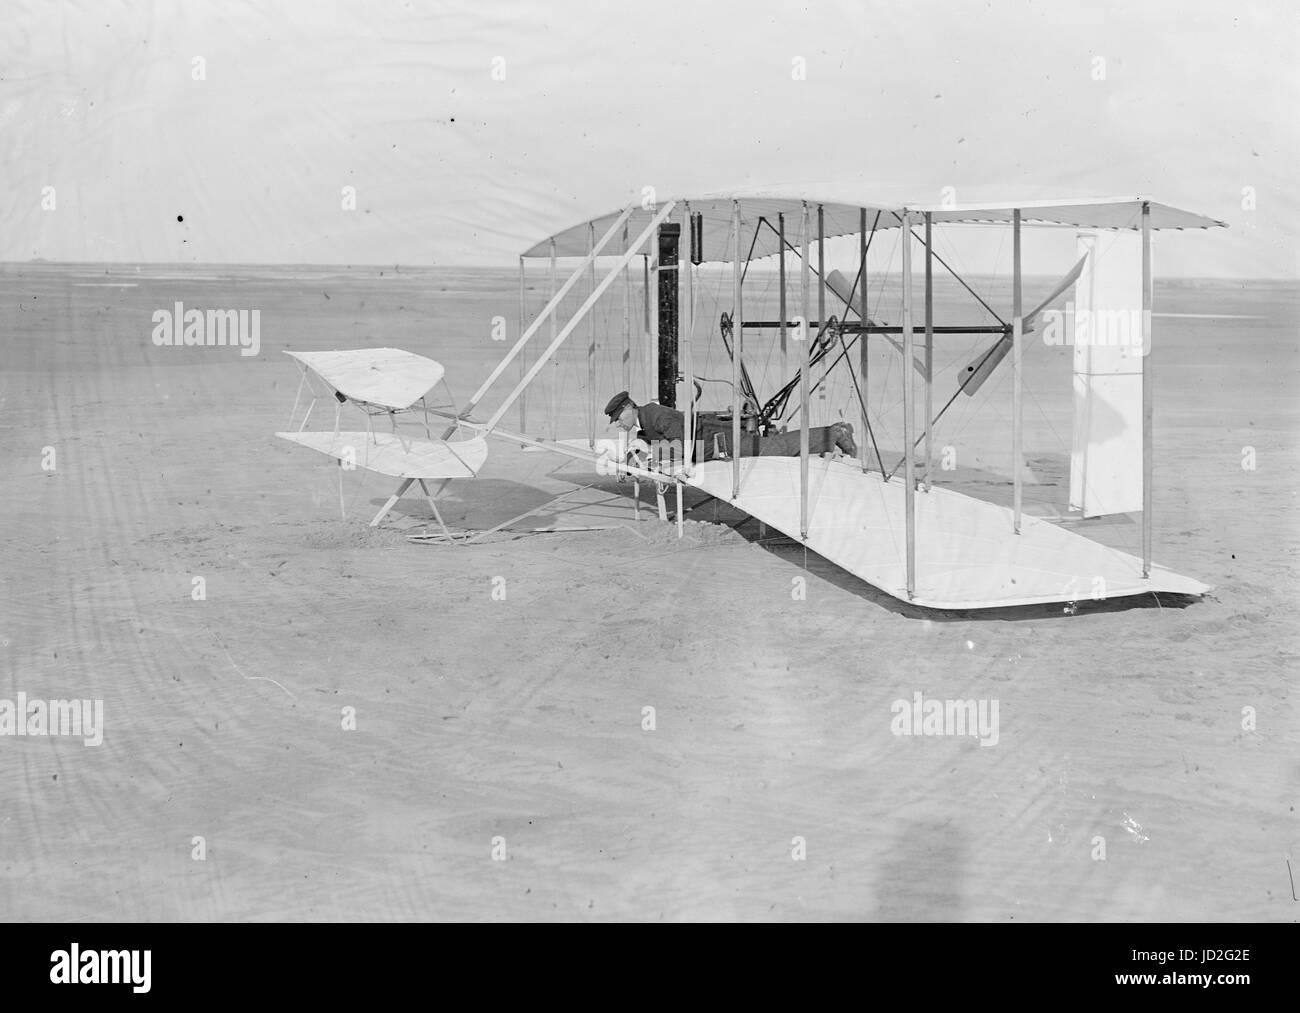 Wilbur in prone position in damaged machine on ground after unsuccessful trial of December 14, 1903; Kitty Hawk, - Stock Image